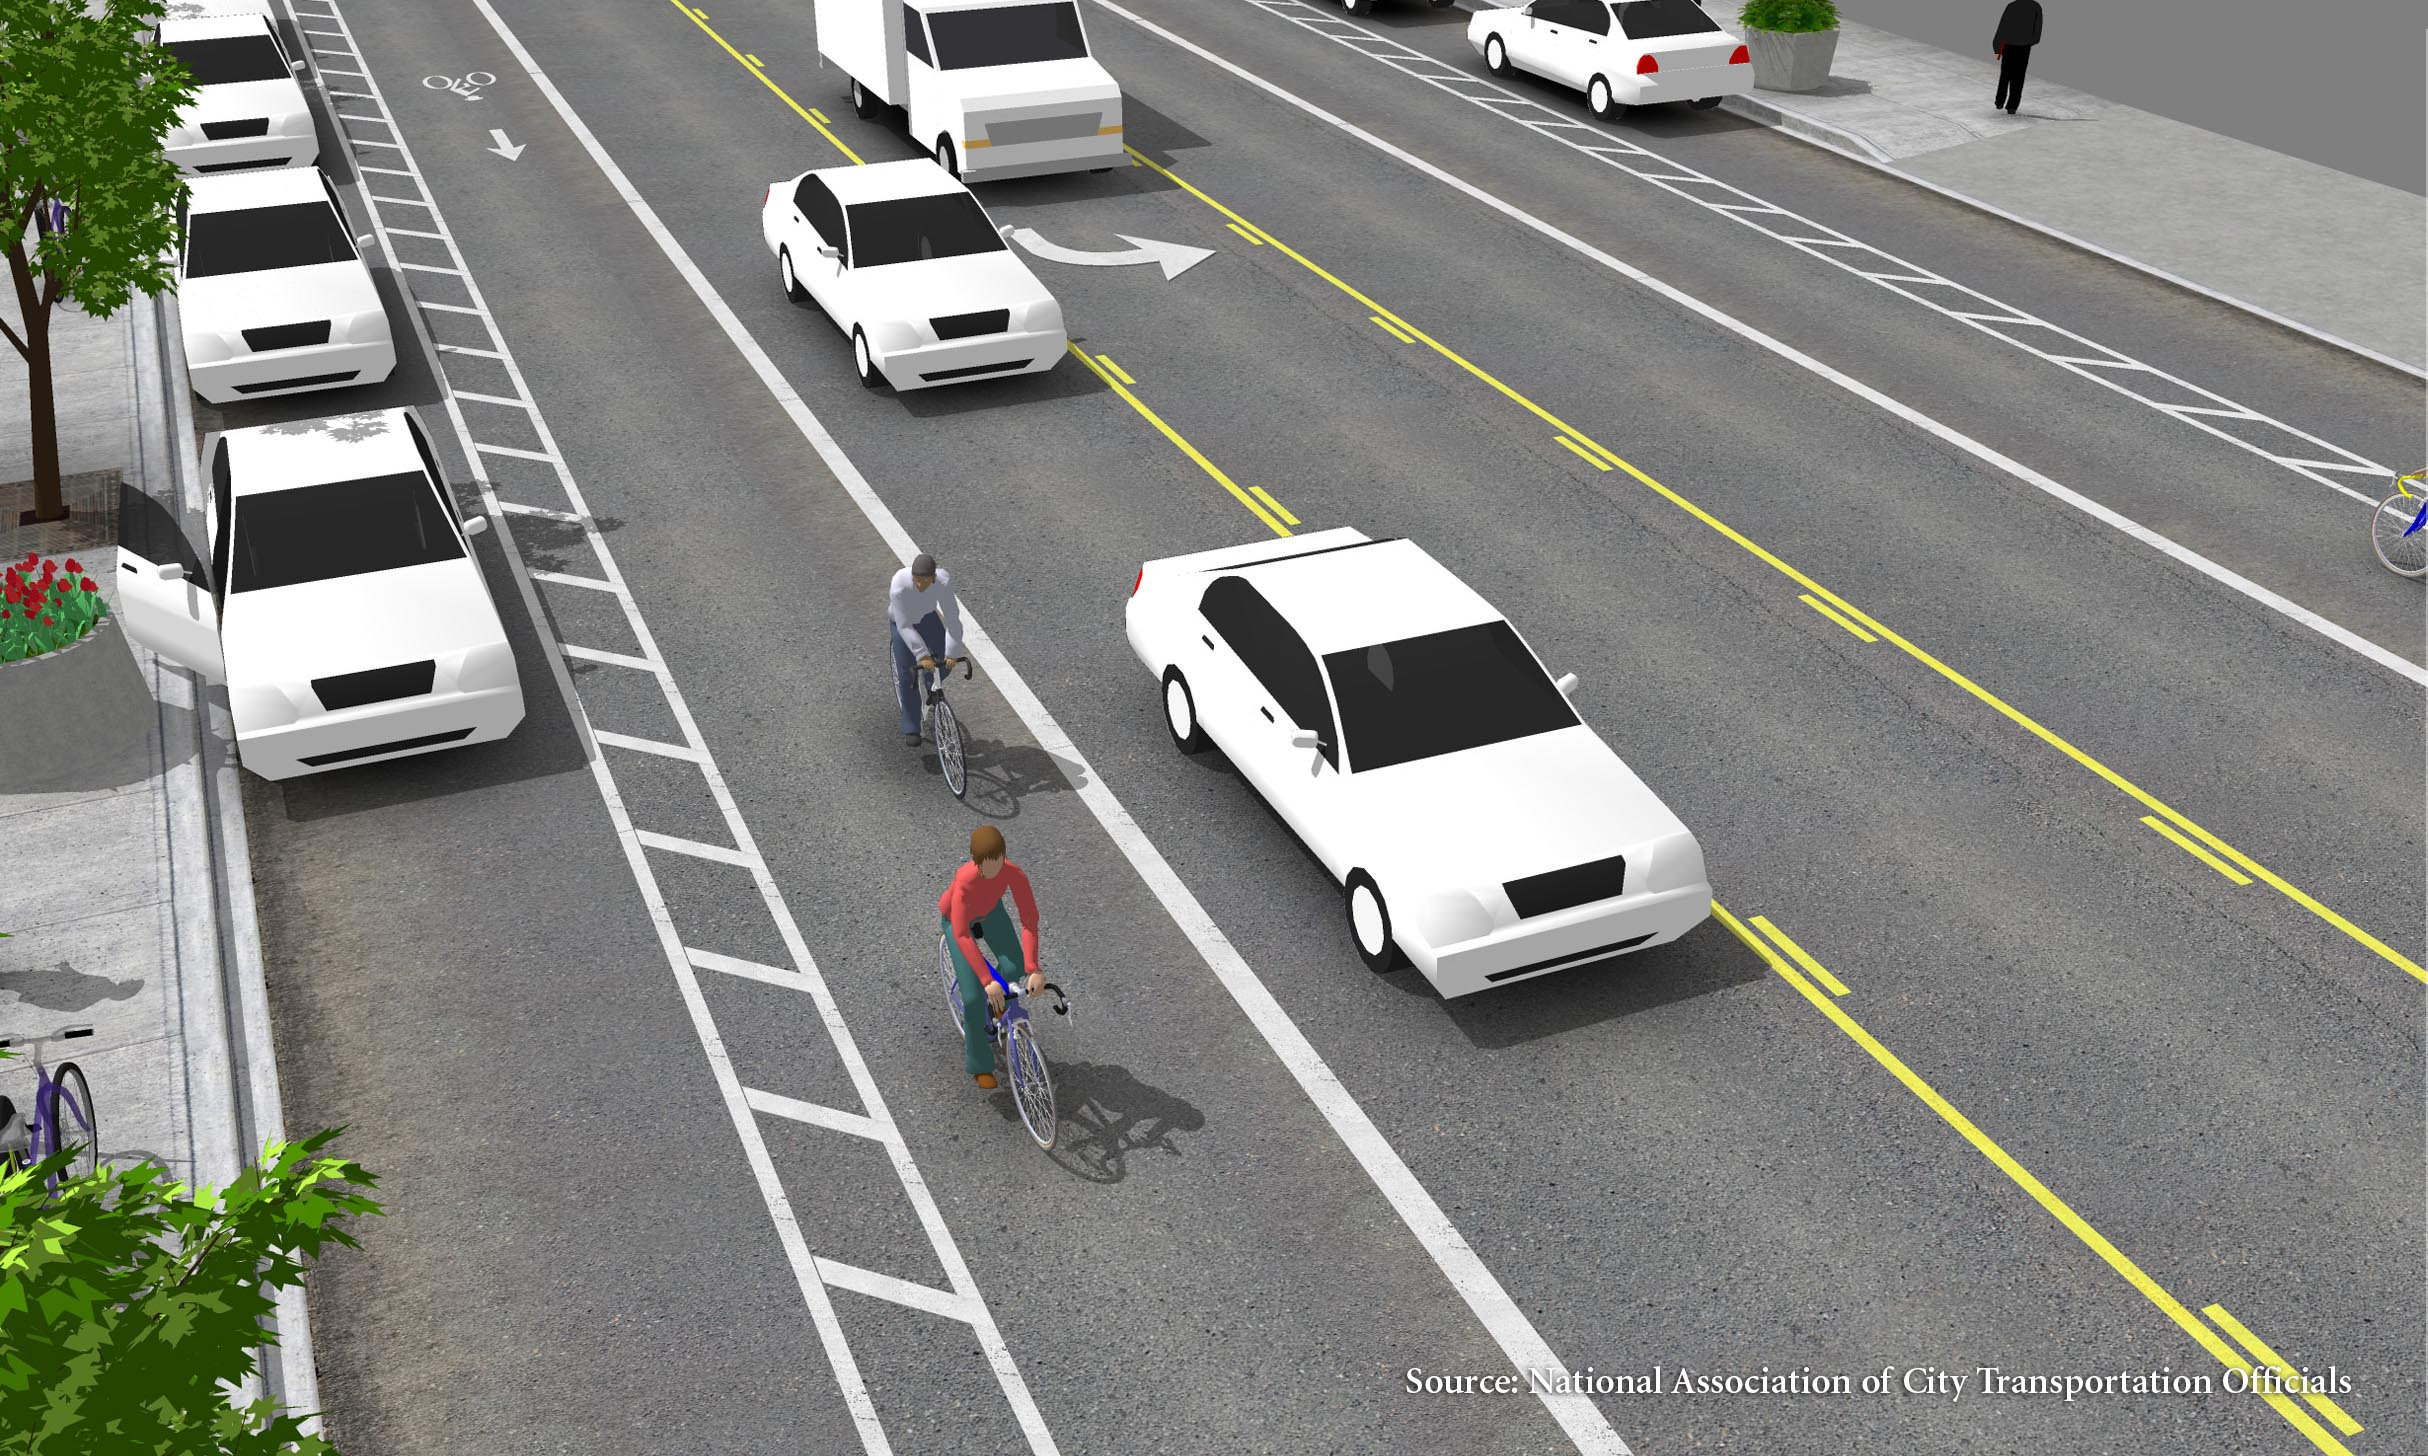 buffered-bike-lane_parking3d_0 cited.jpg